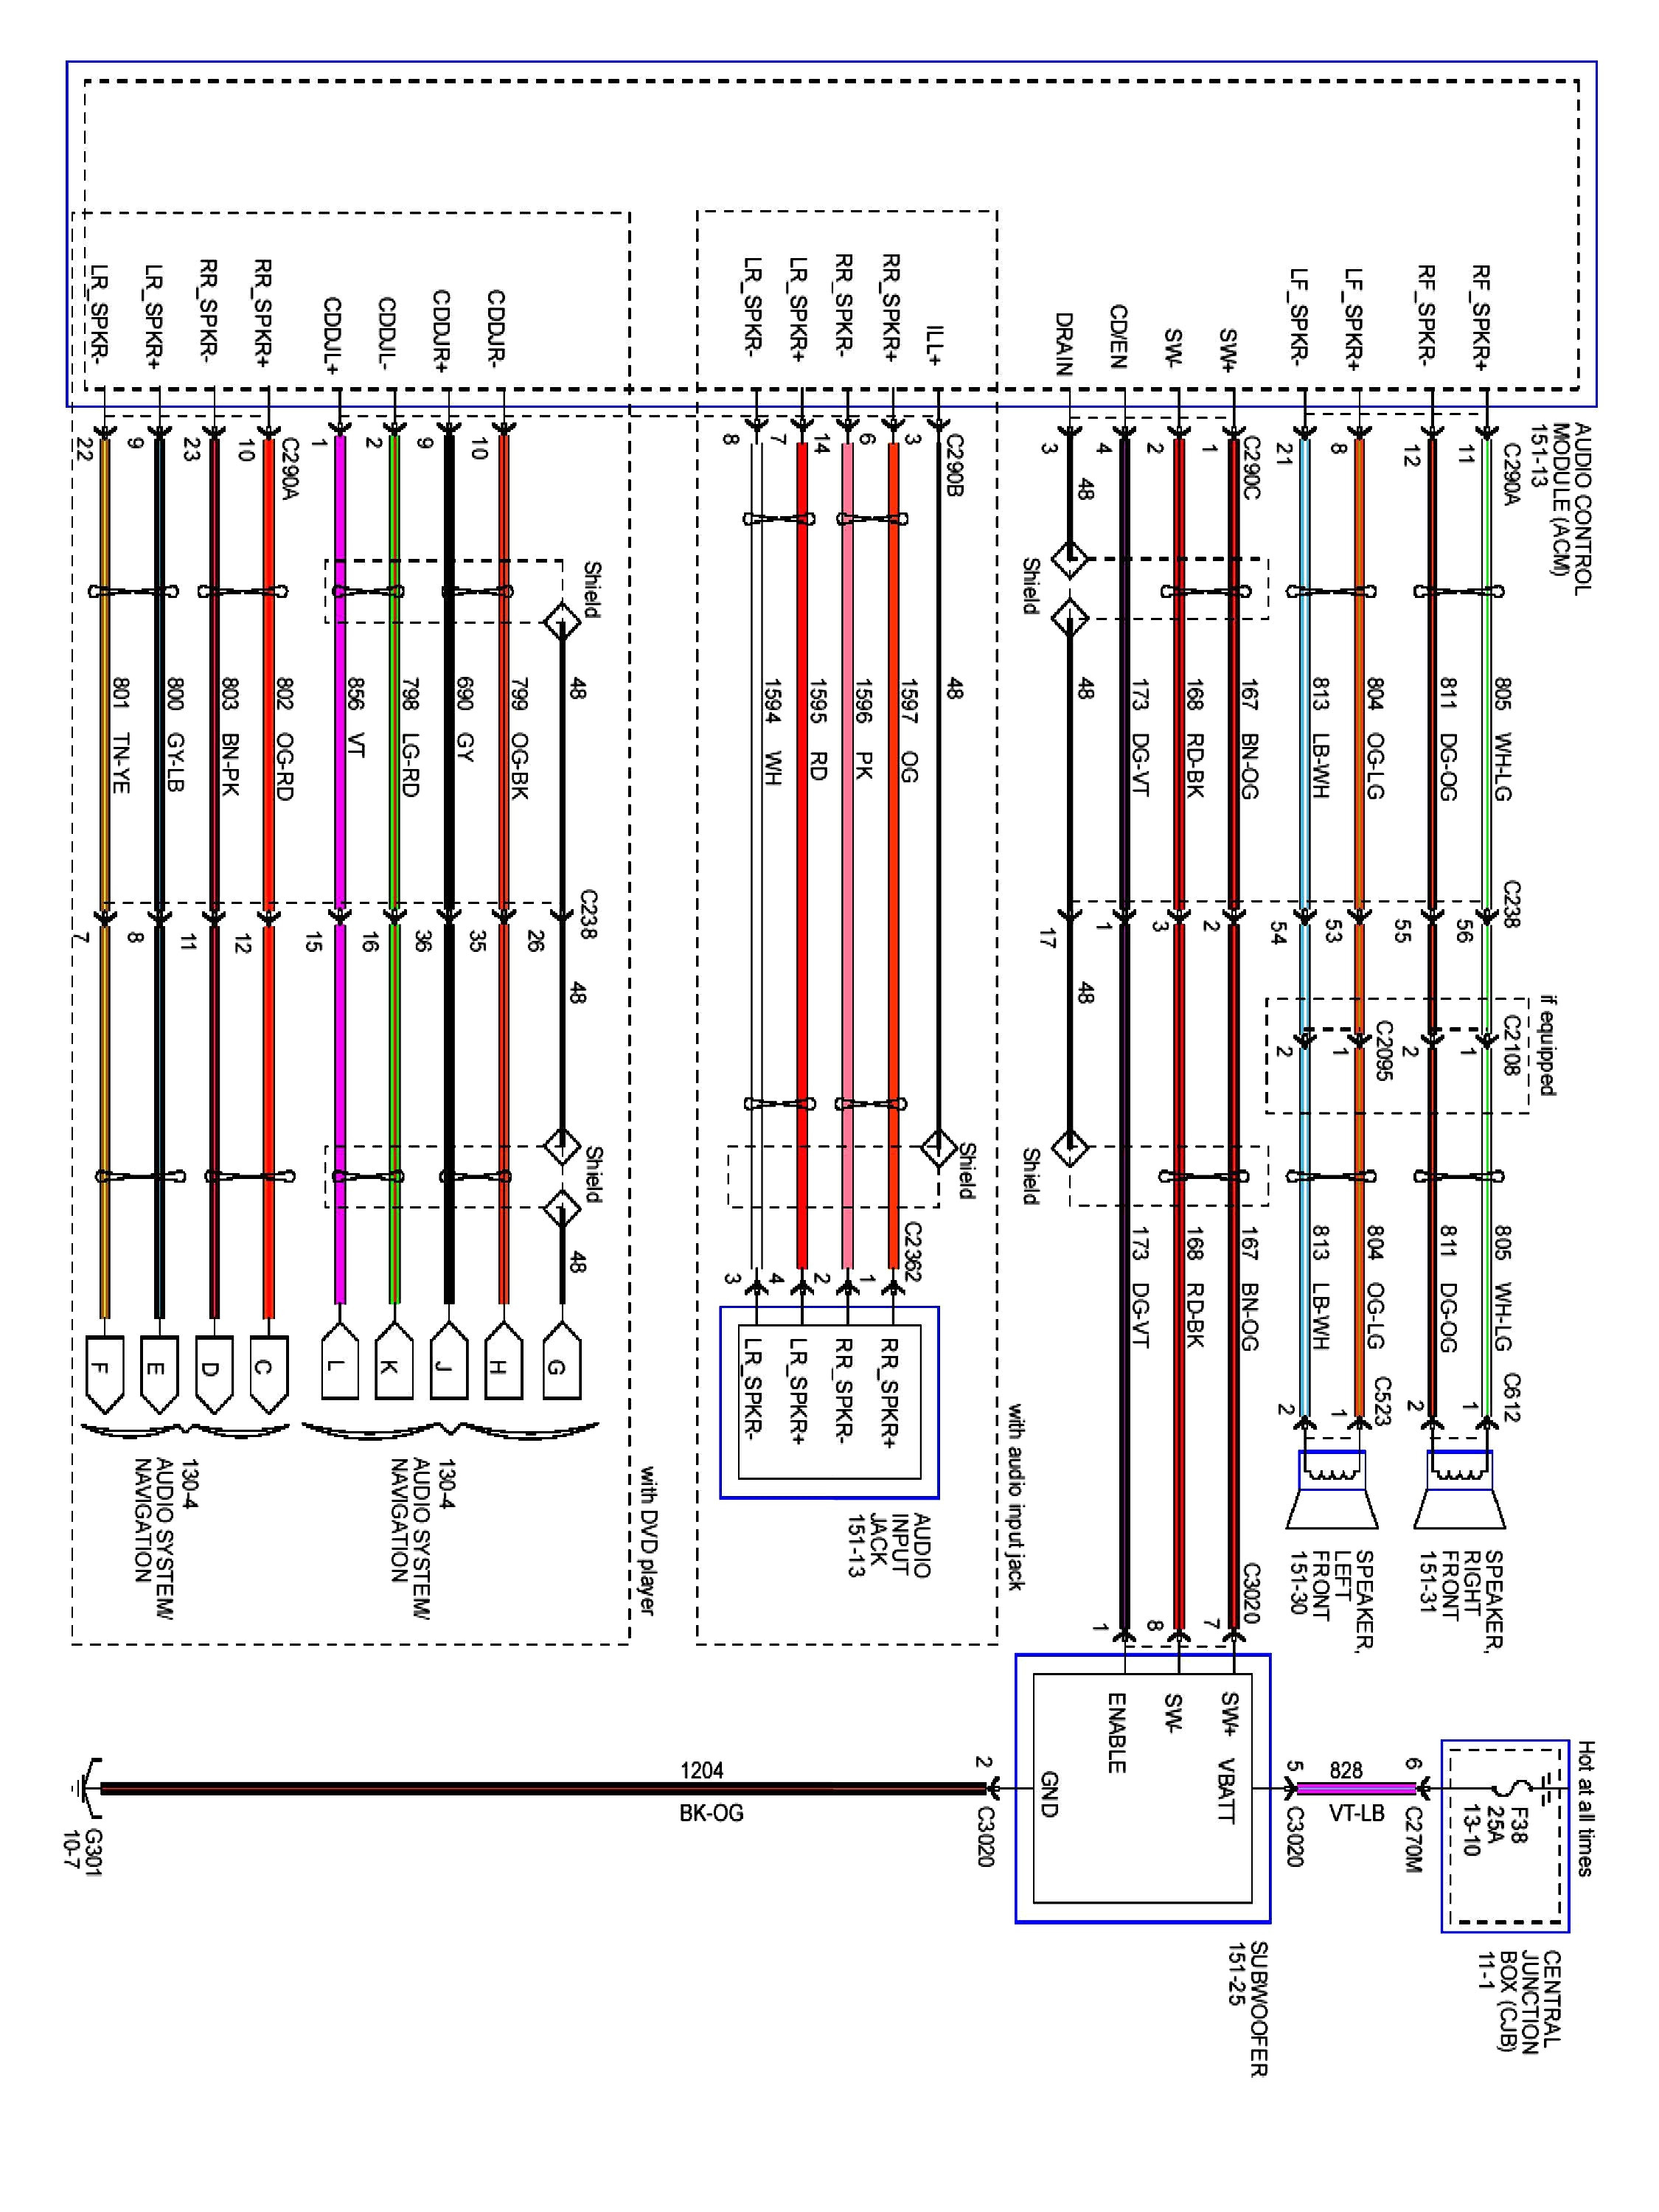 2002 ford F150 Trailer Wiring Diagram Download | Wiring ...  Ford Super Duty Wiring Diagrams on 1999 ford f-250 super duty wiring diagram, 2005 ford super duty wiring diagram, 2002 audi a4 wiring diagram, 2006 ford super duty wiring diagram, 2004 ford f-250 fuse panel diagram, 1992 ford super duty wiring diagram, 2003 ford super duty wiring diagram, 2001 ford zx2 wiring diagram, 2002 land rover discovery wiring diagram, 1993 ford super duty wiring diagram, 2002 cadillac escalade wiring diagram, 2000 ford excursion radio wiring diagram, 2011 ford super duty fuse diagram, 2001 ford f-250 fuse panel diagram, 2008 ford super duty wiring diagram, ford f-350 vacuum diagram, ford super duty radio wiring diagram, 2000 ford super duty wiring diagram, 2002 toyota highlander wiring diagram, 2002 lincoln navigator wiring diagram,